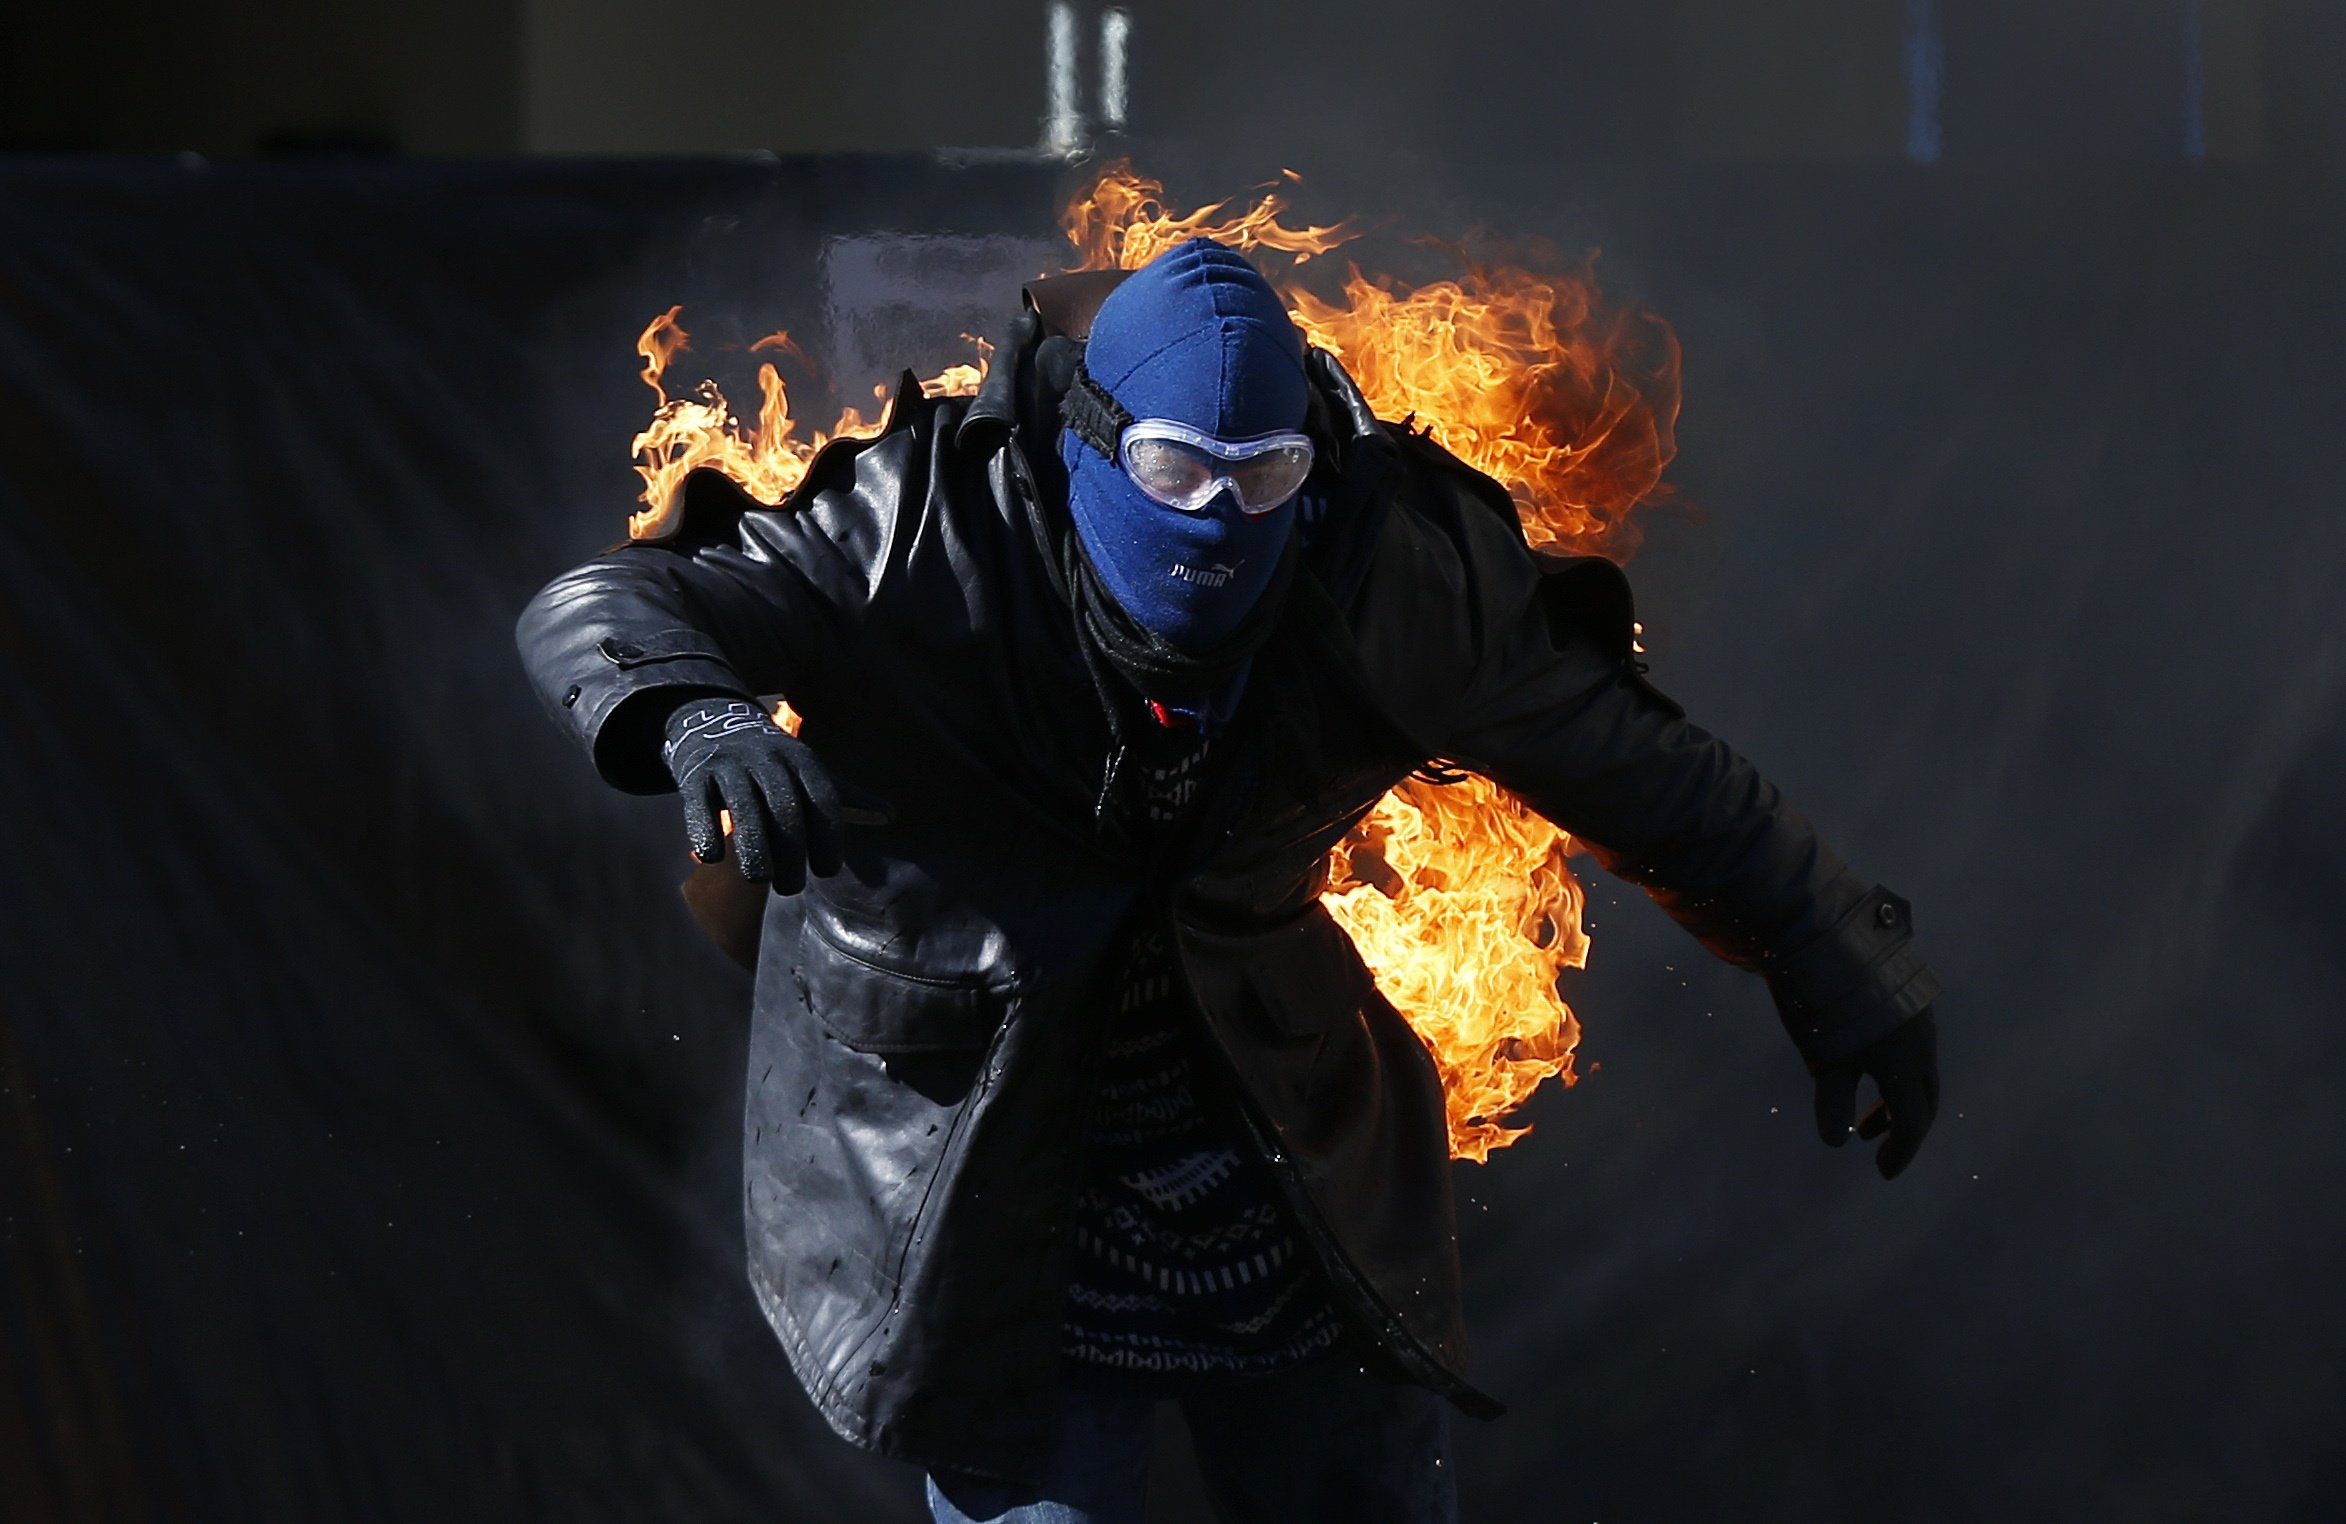 James performs a fire stunt during a publicity event at Luna Park in Sydney